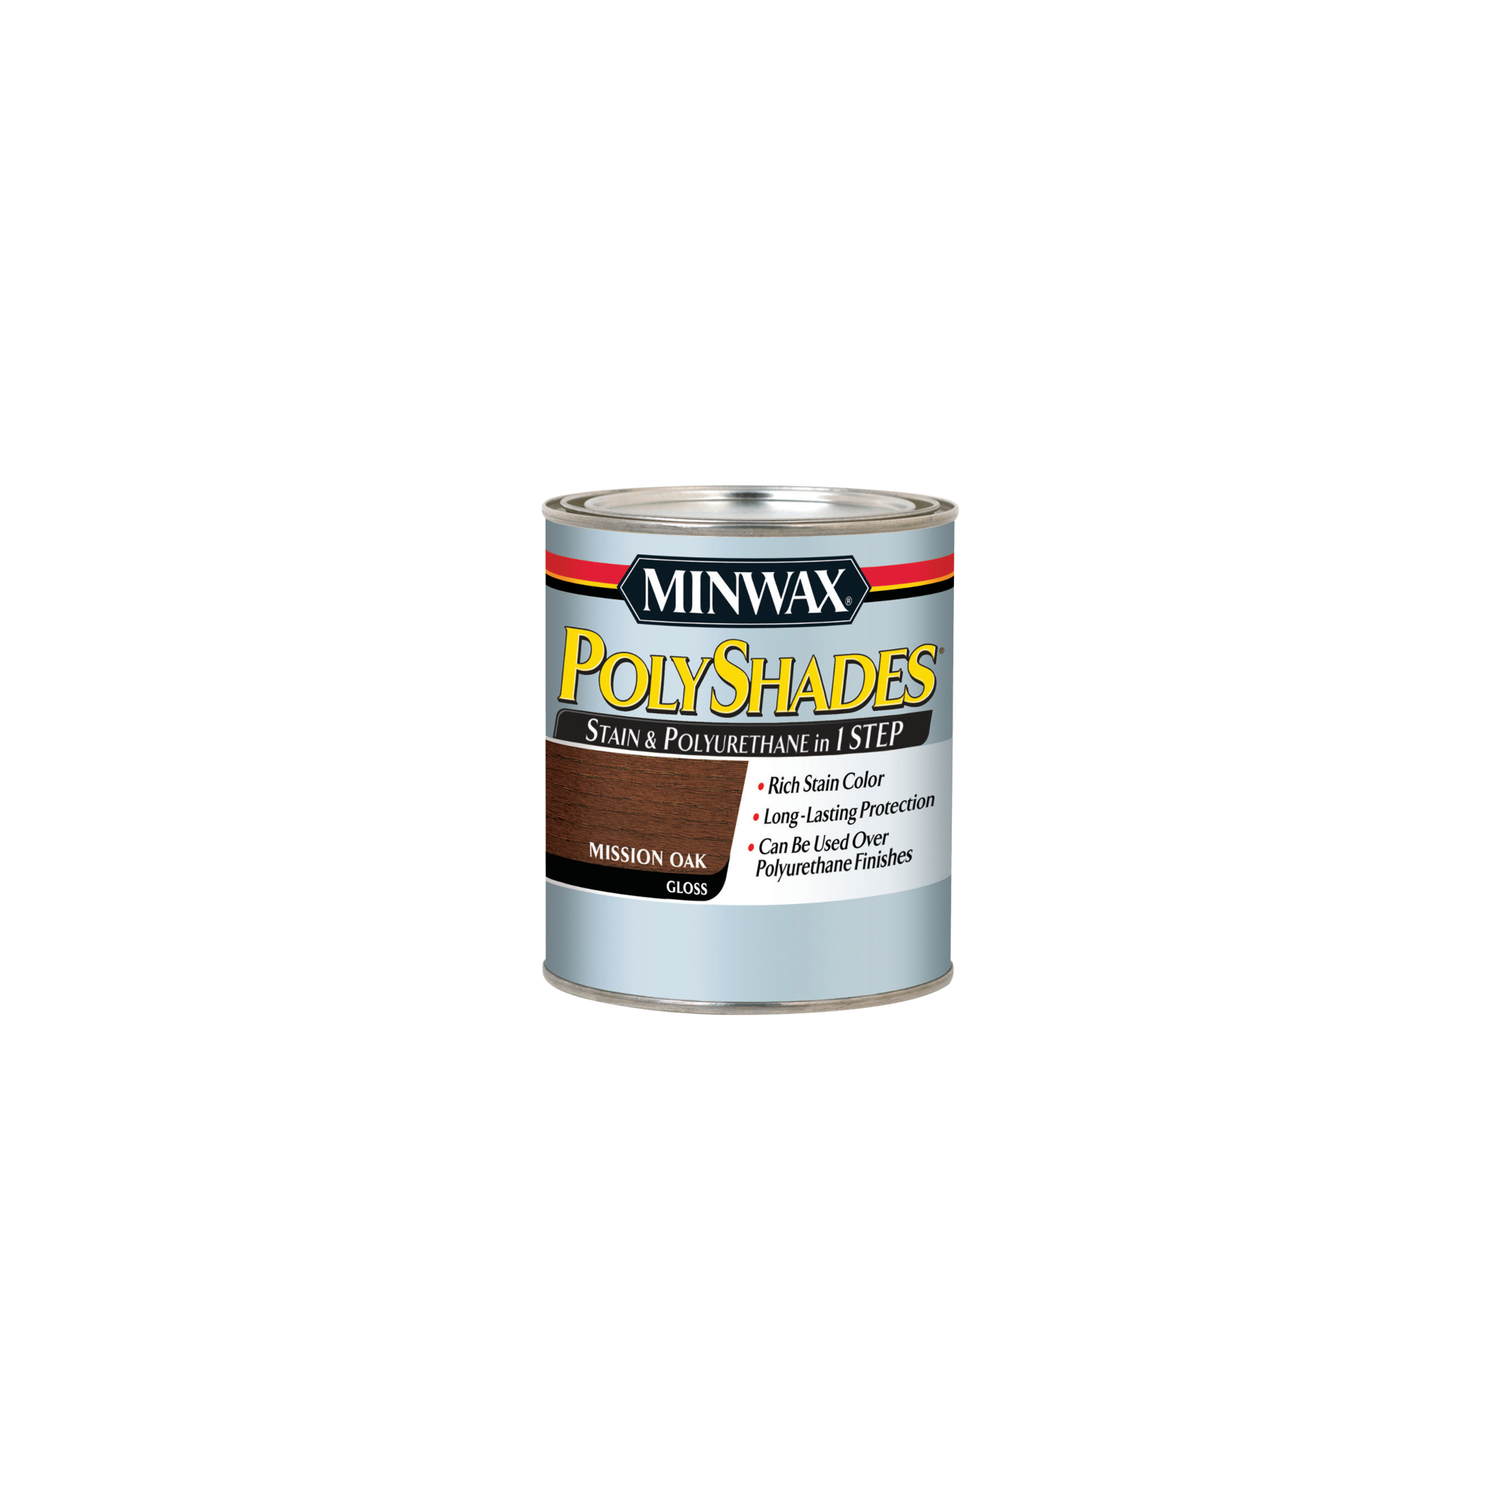 Minwax  PolyShades  Semi-Transparent  Gloss  Mission Oak  Oil-Based  Polyurethane Stain  0.5 pt.